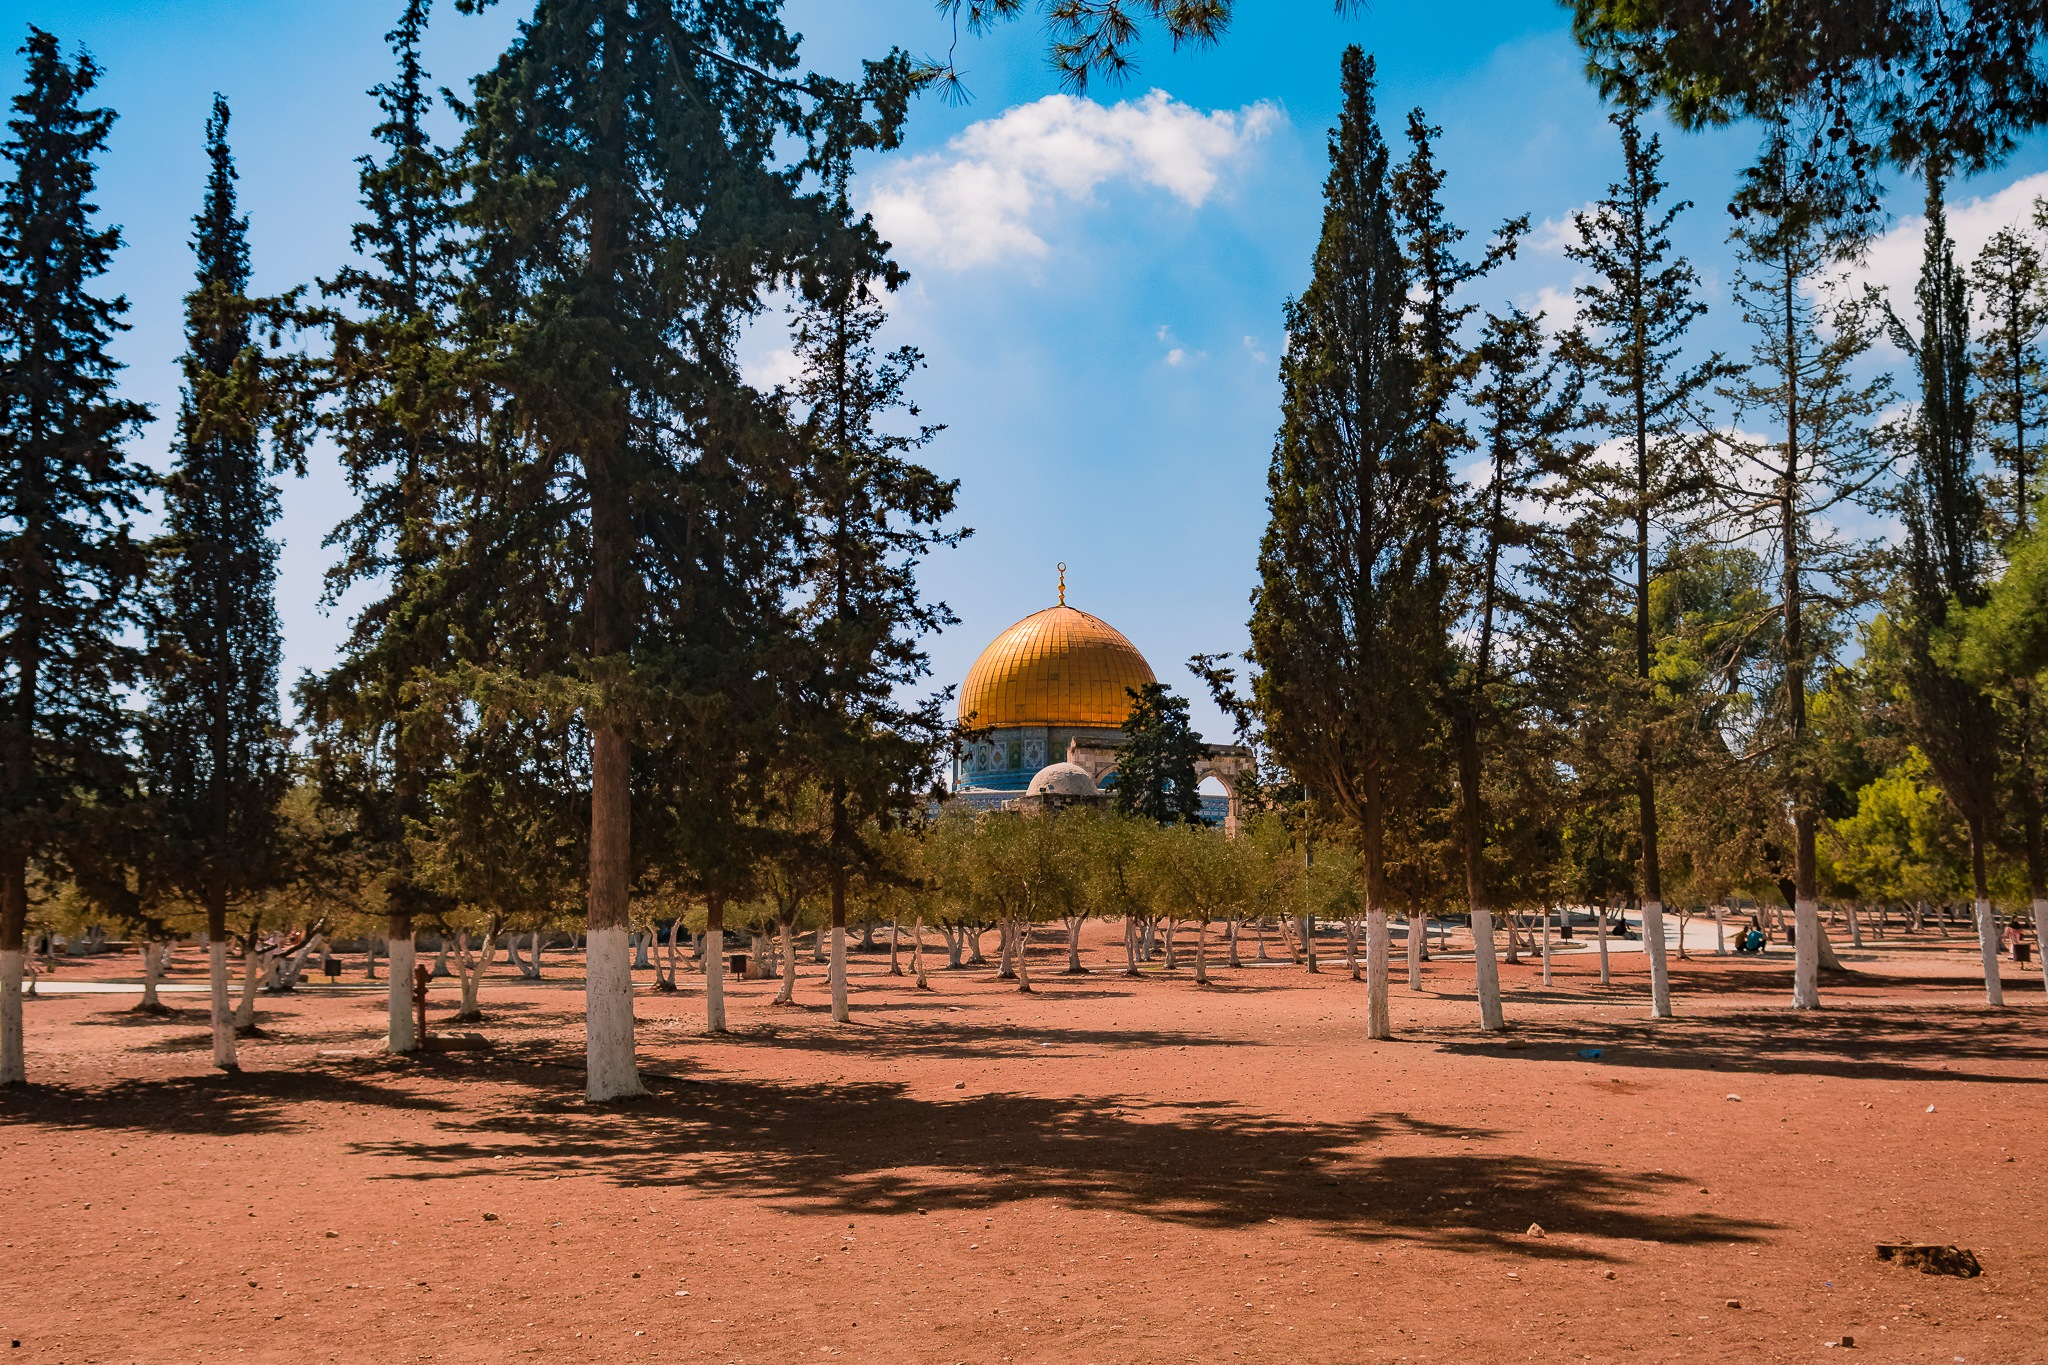 Aqsa and tree by Yaser Naserideen